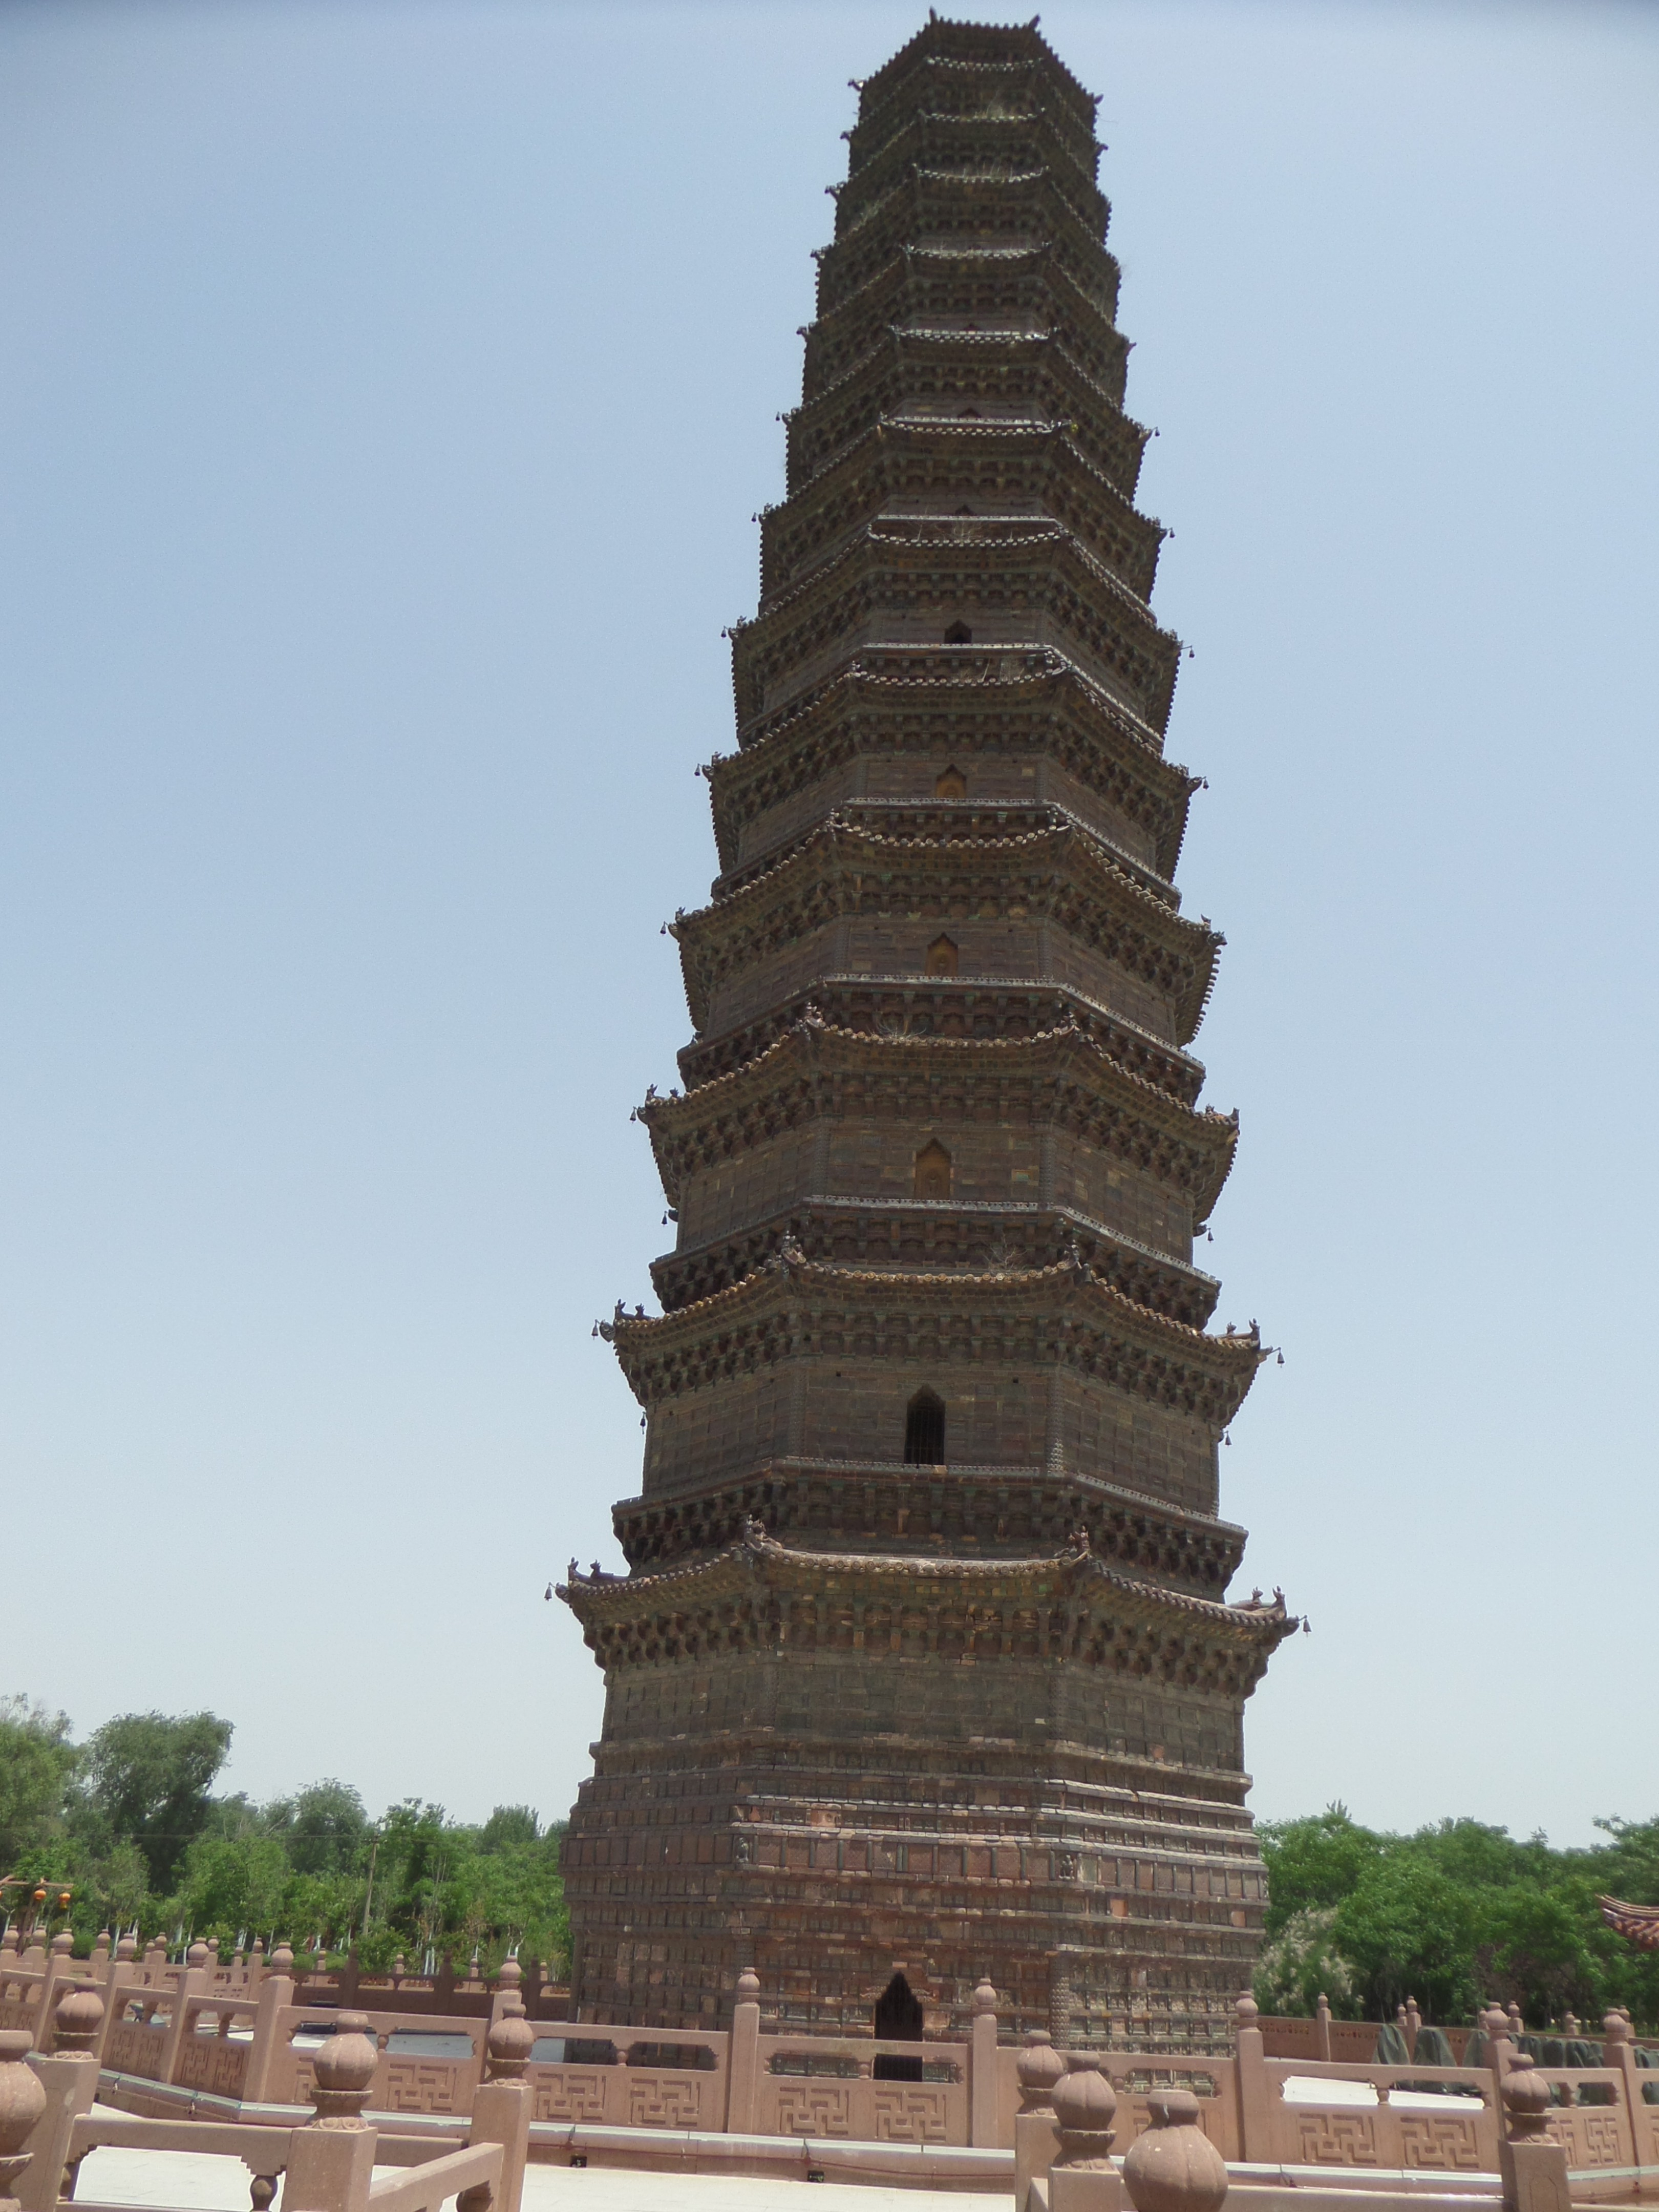 The Iron Pagoda in Kaifeng, Henan, China.